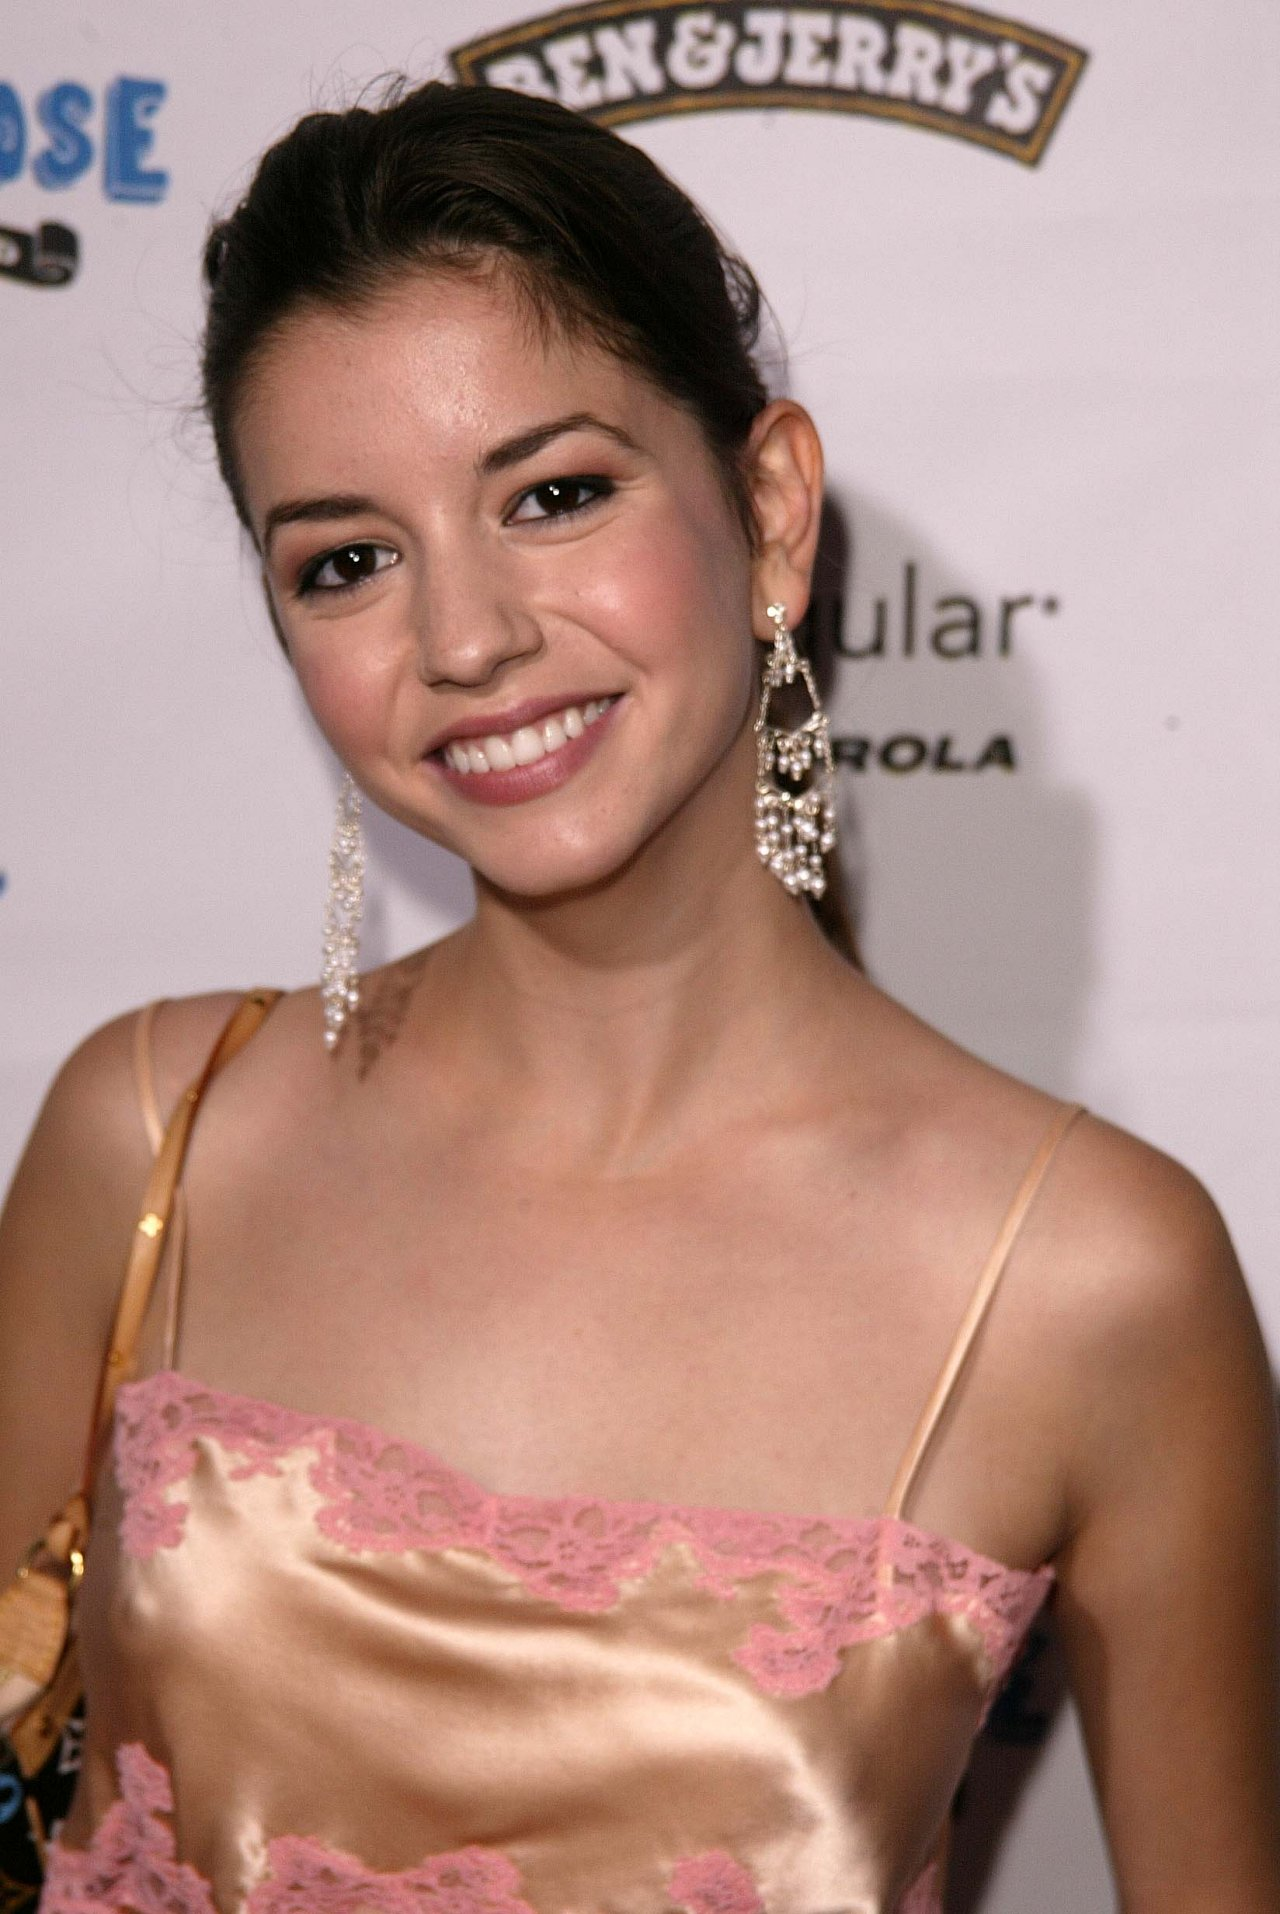 Masiela Lusha leaked wallpapers